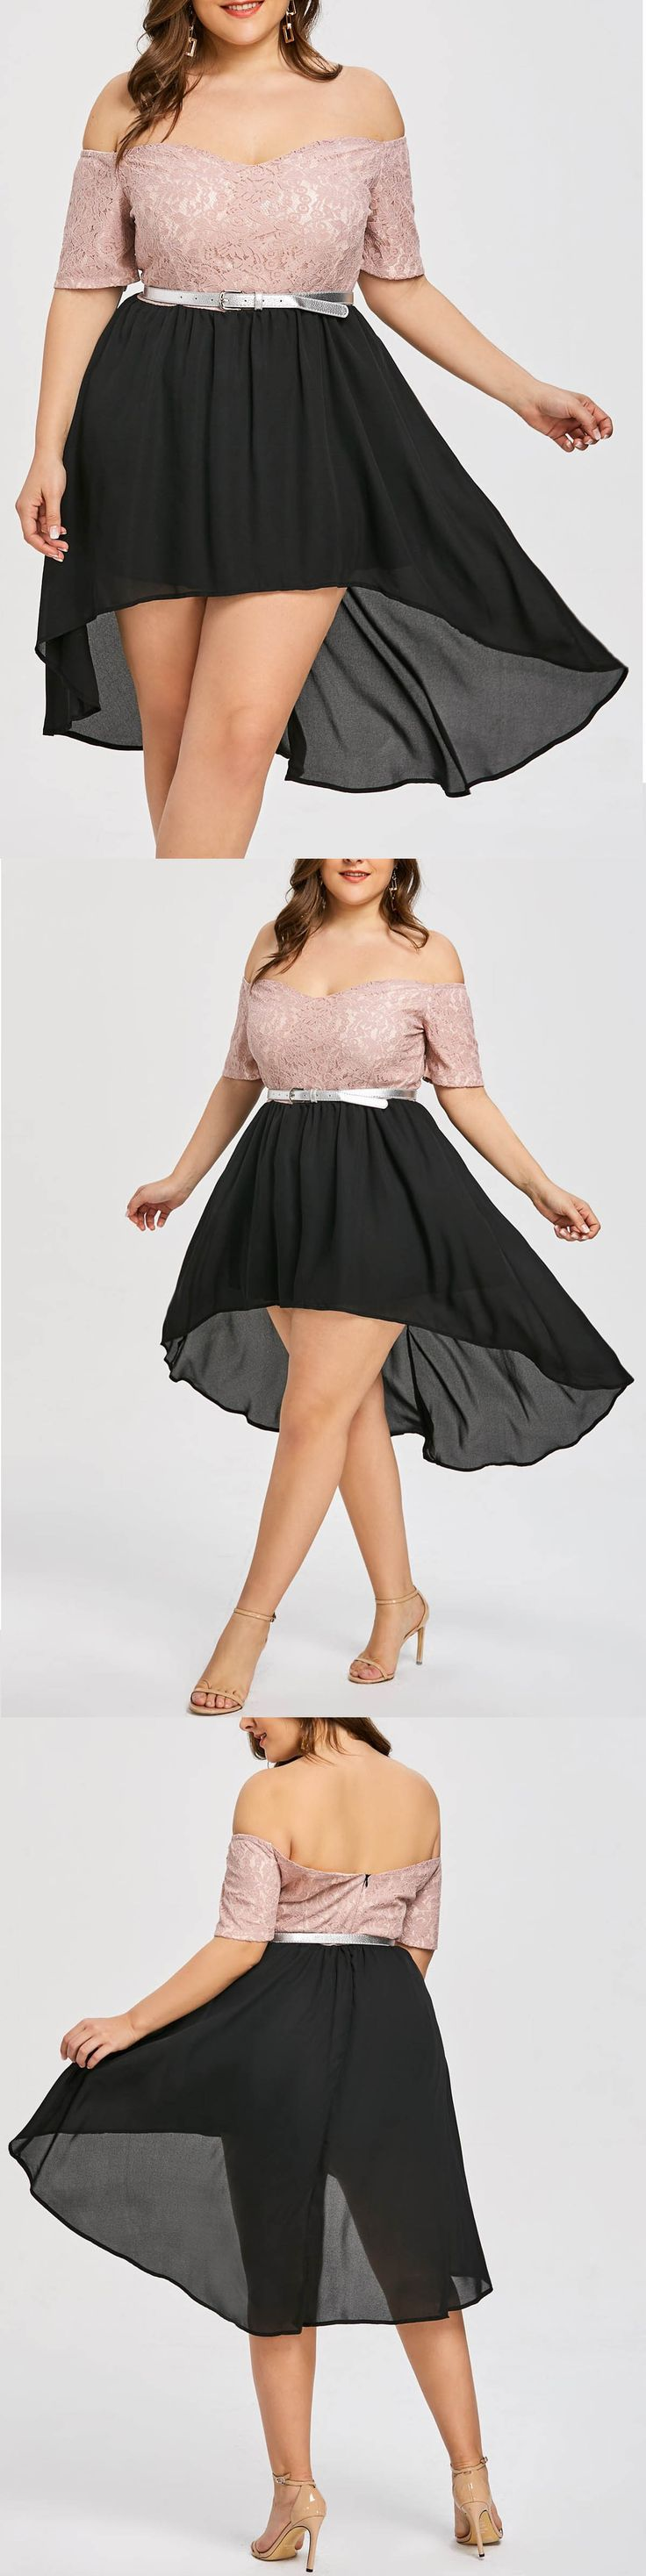 $15.32,Plus Size High Low Off-the-shoulder Cocktail Dress - Black And Pink 3xl | Rosewholesale,rosewholesale.com,rosewholesale clothes,rosewholesale.com clothing,rosewholesale plus size,rosewholesale dress,rosewholesale dress plus size,rosewholesale valentines day,rosewholesale Easter,rosewholesale for women,off the shoulder dress,plus size,lace dress,High Low,cocktail dress,valentines day outfit,valentines day party,dress | #rosewholesale #dress #plussize #offtheshoulder